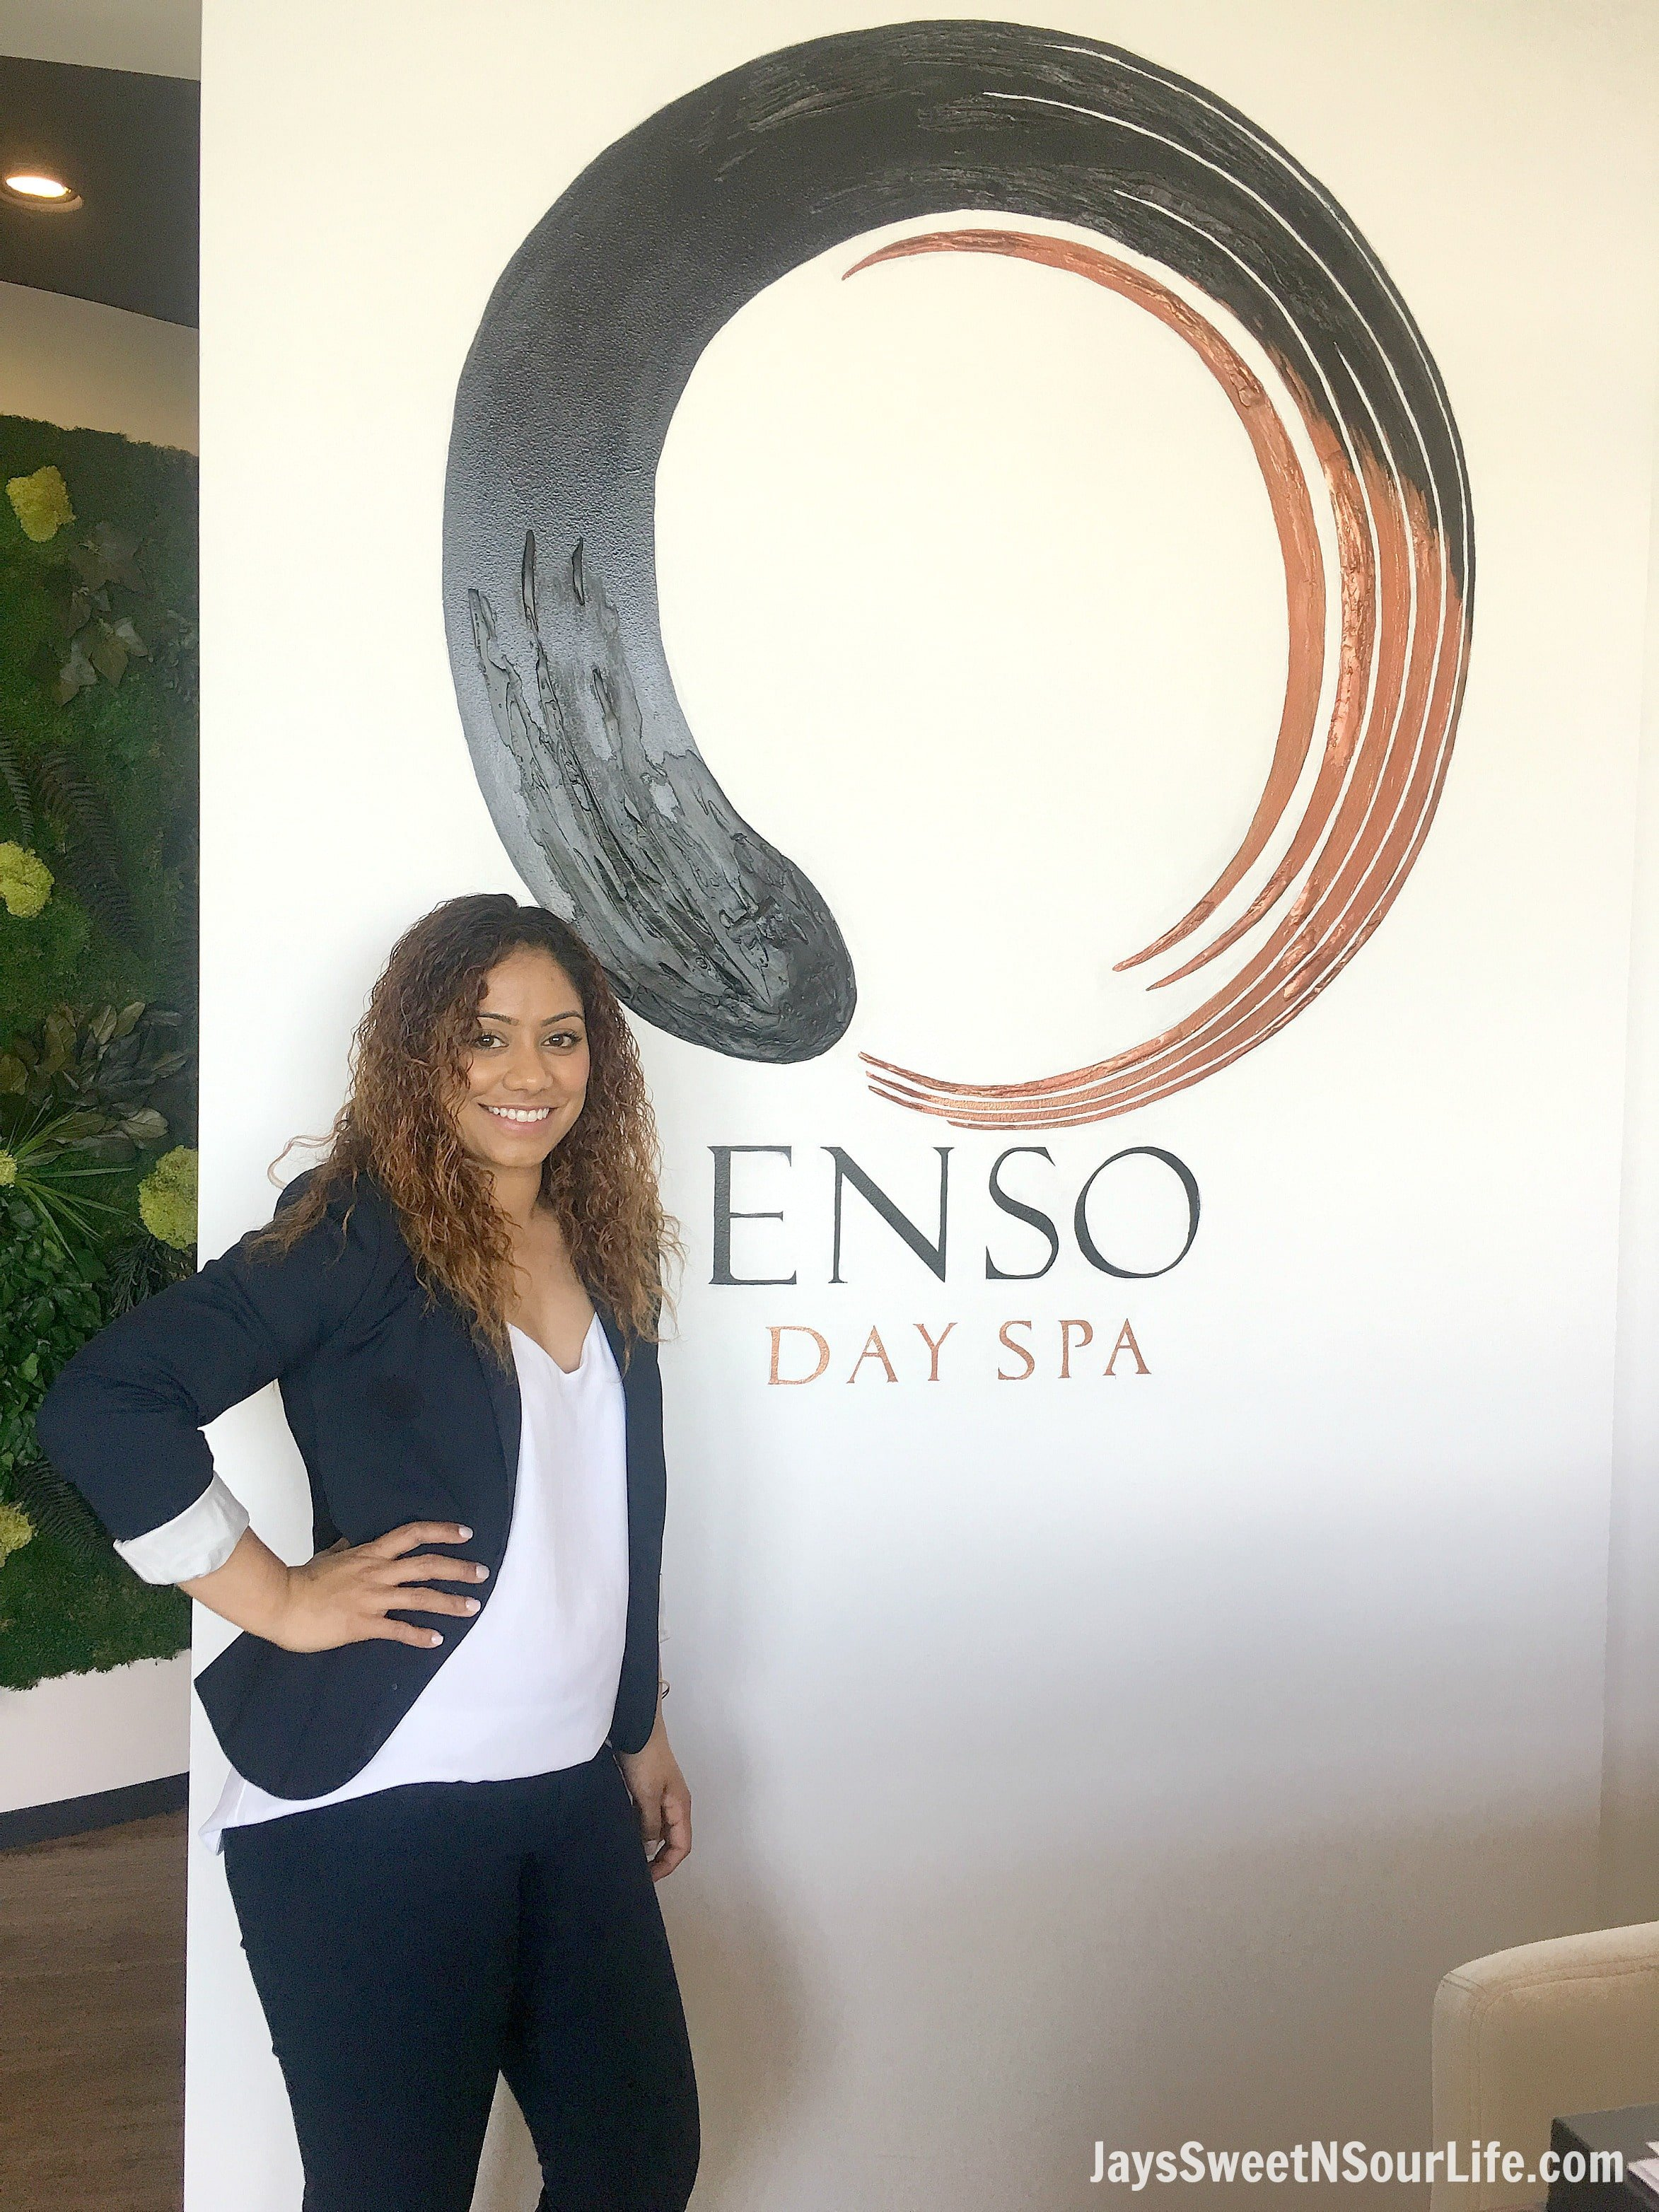 The Enso Day Spa